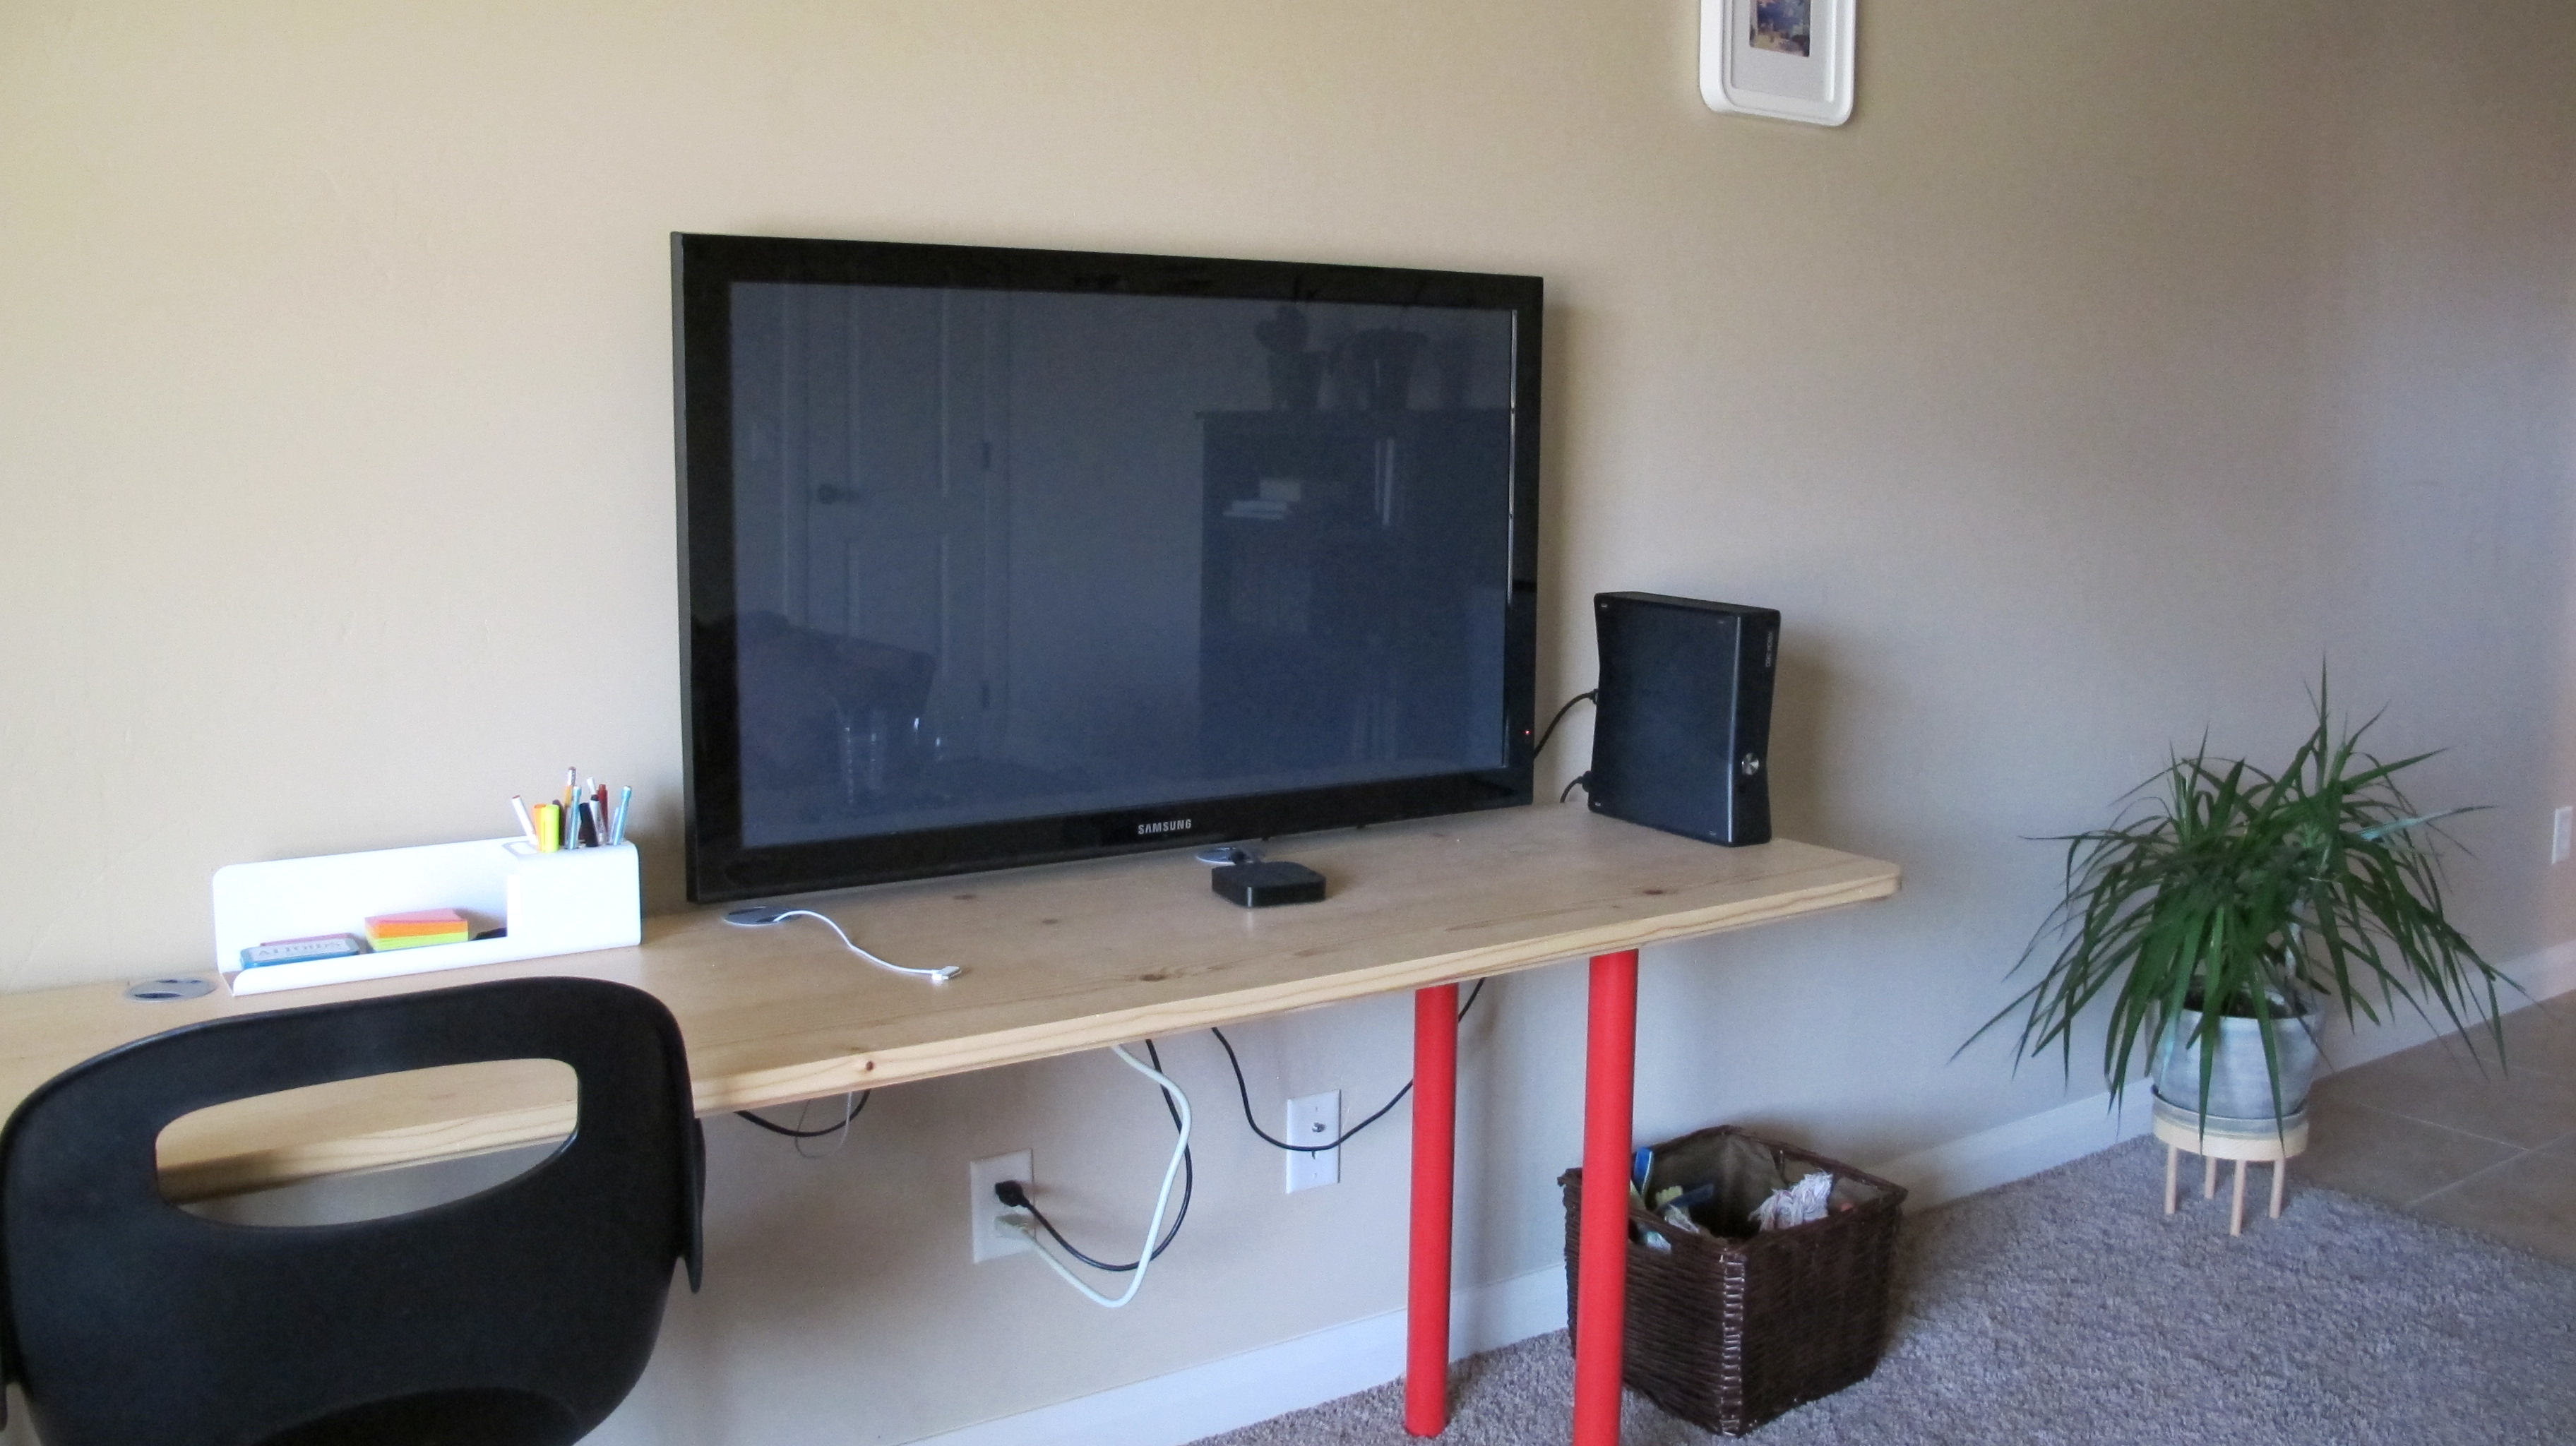 French Cleat Monitor/TV Mount